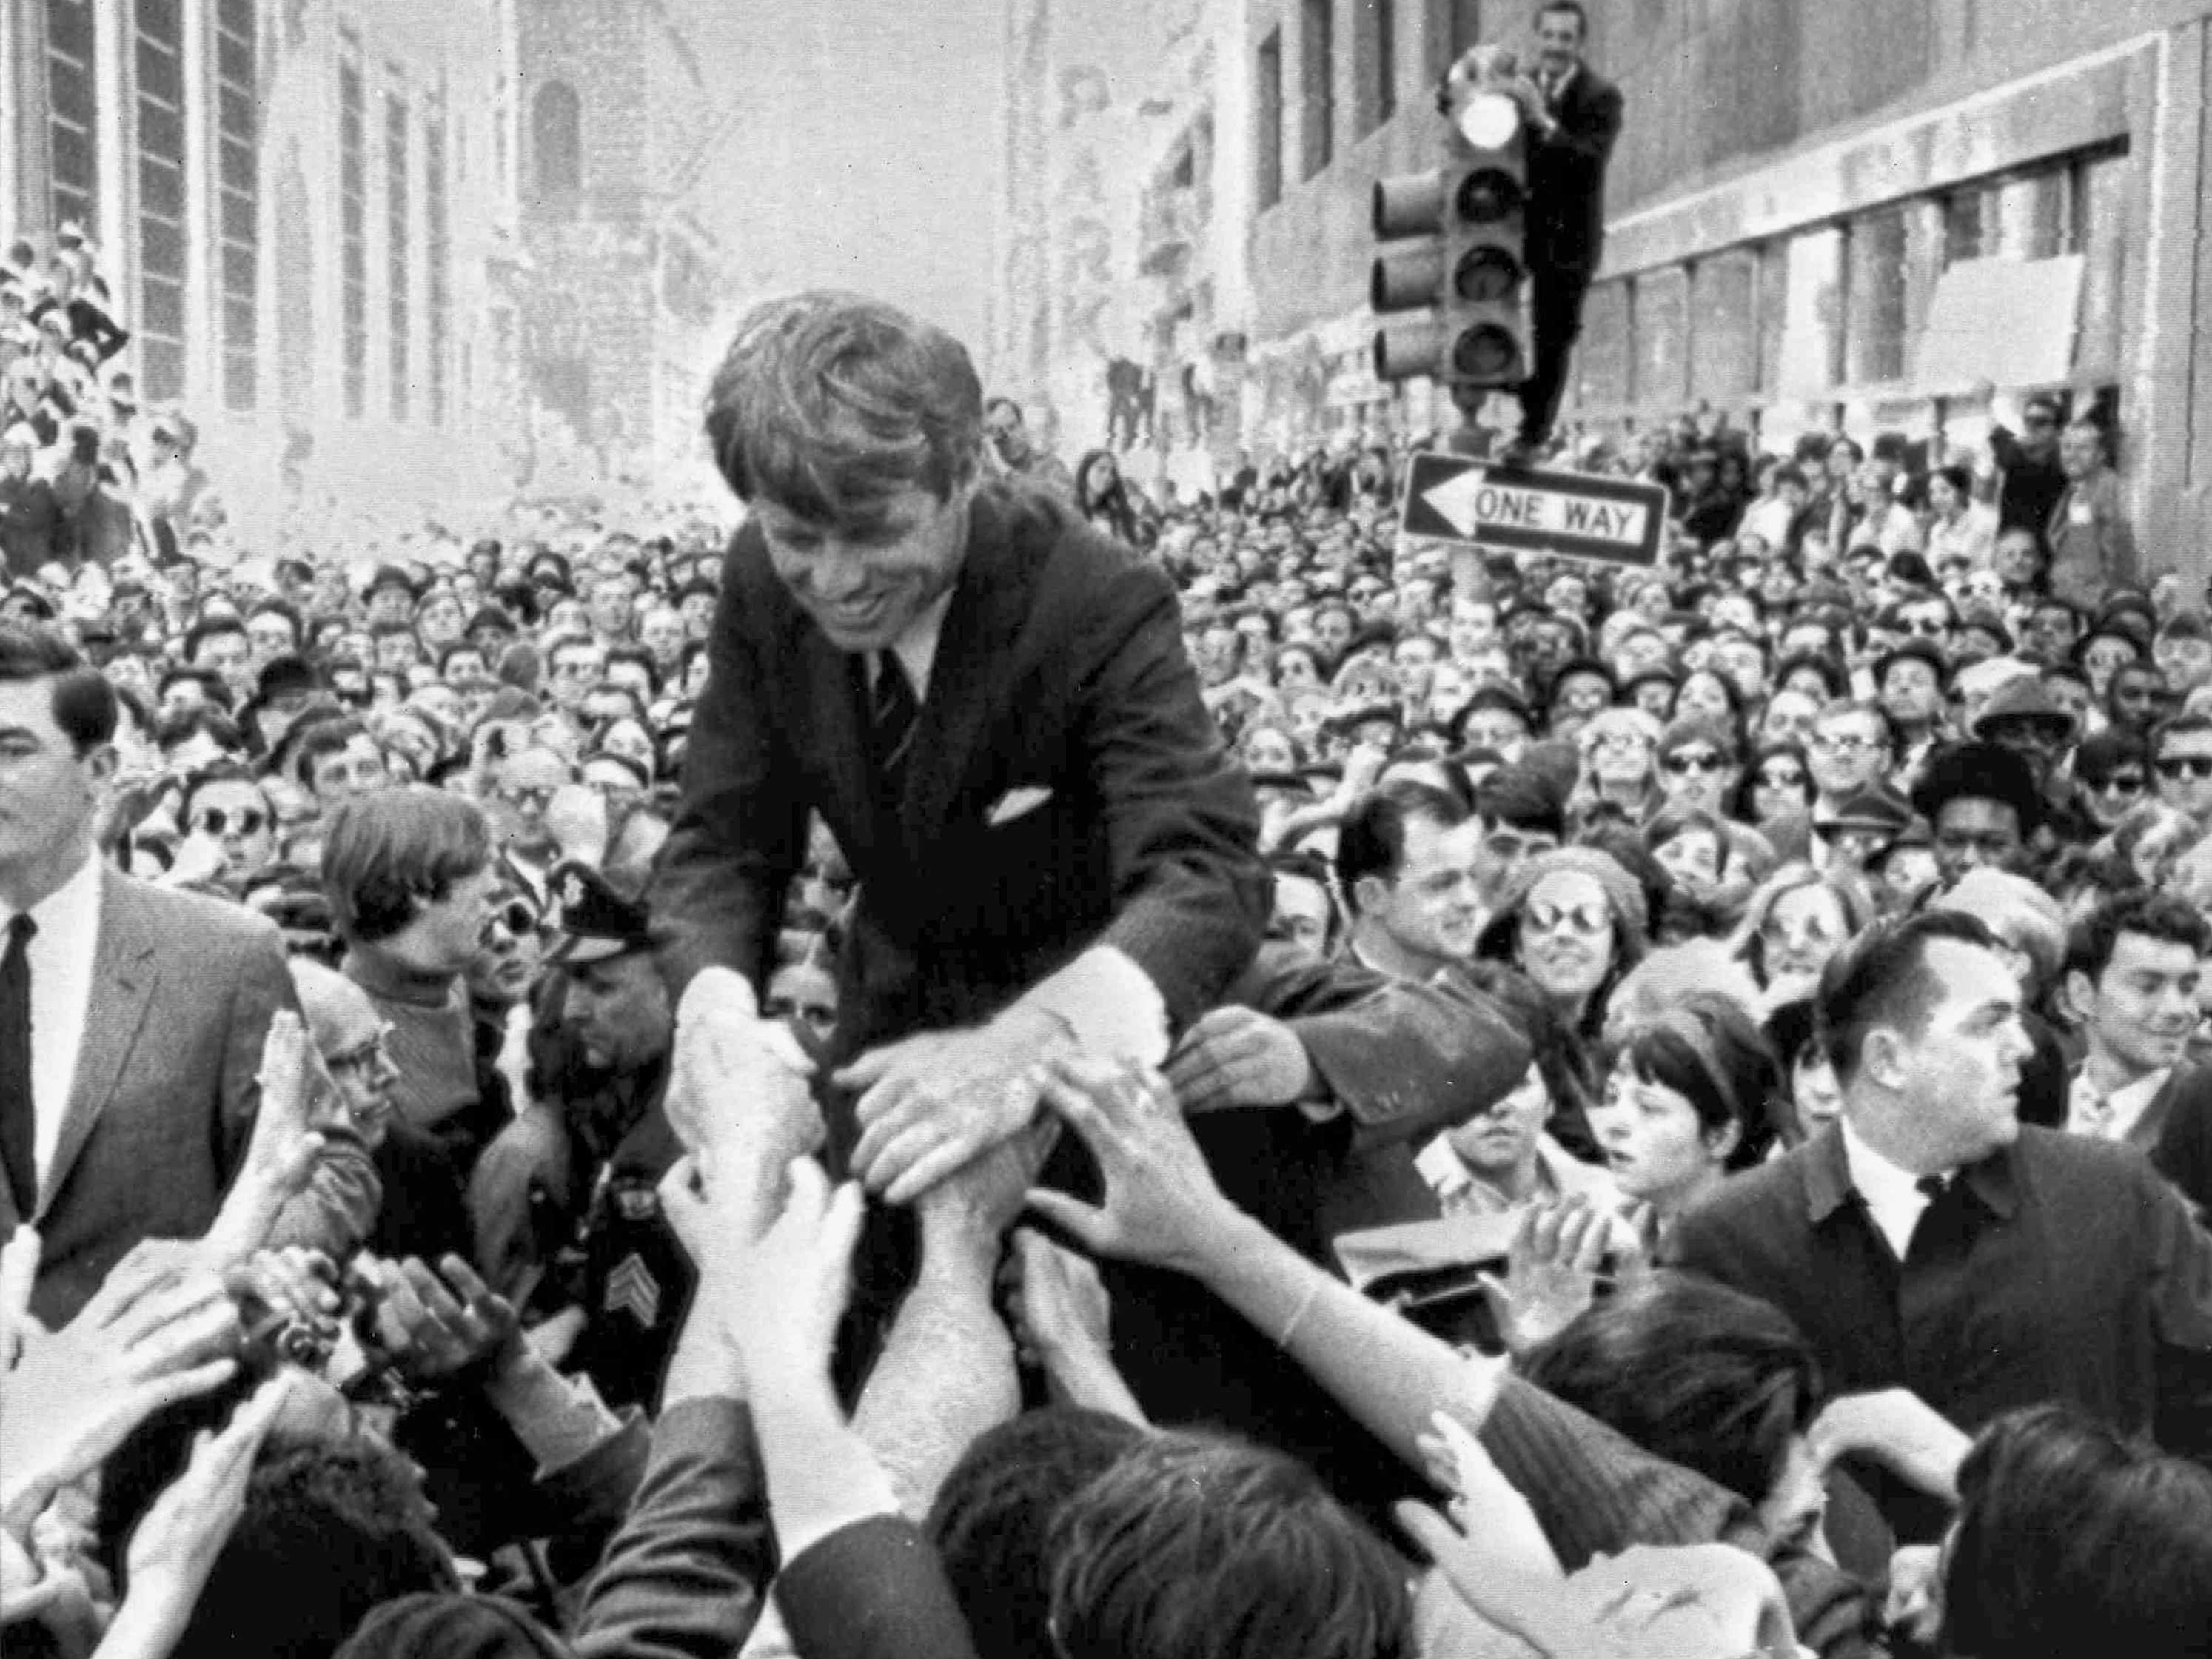 Netflix Documentary Explores RFK's Legacy 50 Years Later